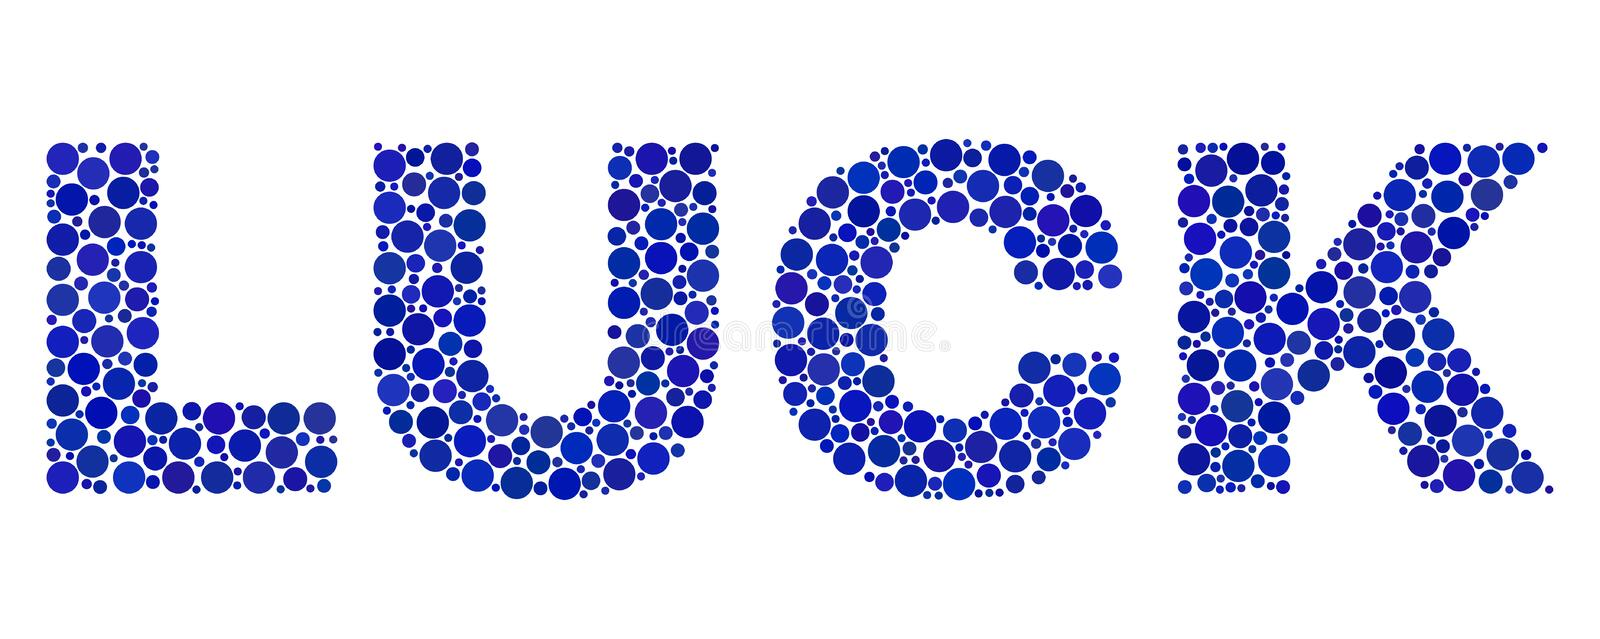 LUCK Text in Dot Style. Vector dot Luck text isolated on a white background. Luck mosaic caption of circle dots in various sizes stock illustration